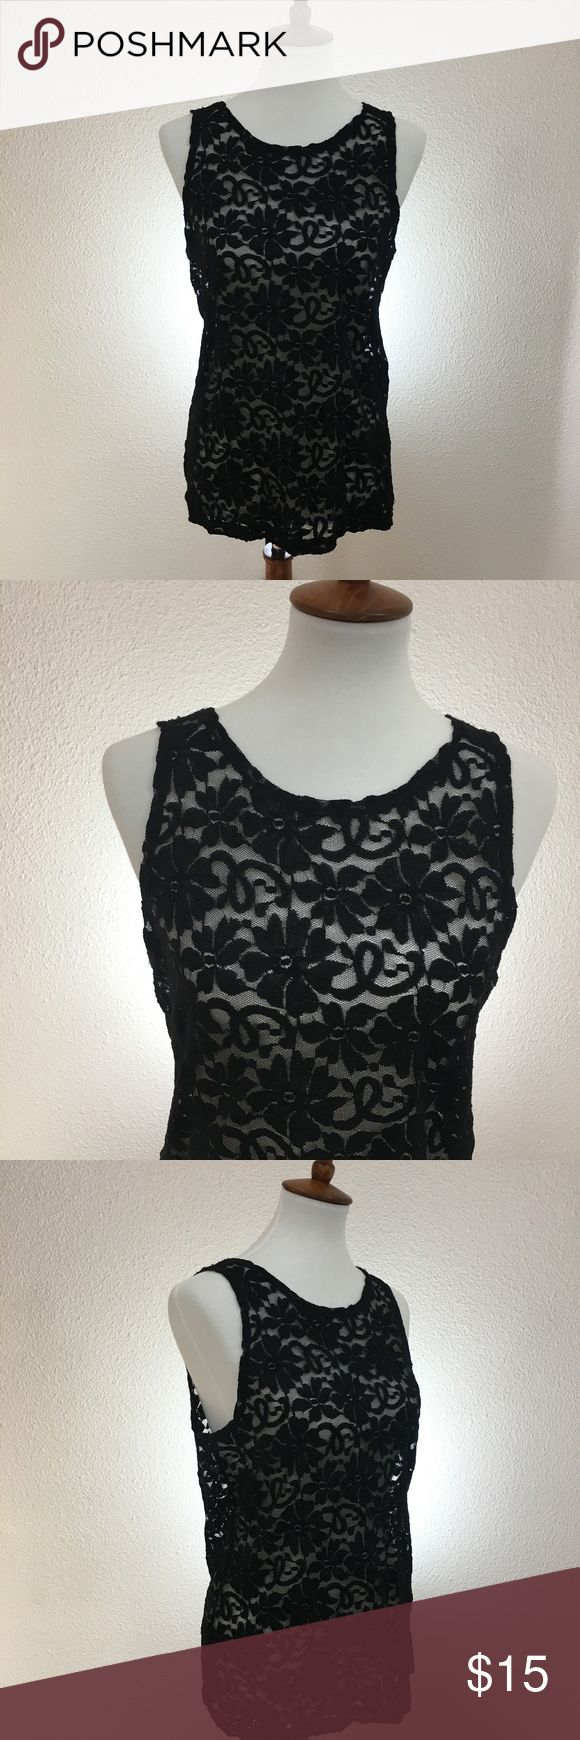 Solange Girls Black Lace Tank Top Solange girls lace tank top  Size: 14/16 Style: Lace tank top Color: Black Material: 100% Nylon Condition: Lightly worn, tag is worn but other than that its in excellent used condition with plenty of useful life left  Measurements Bust (Armpit to Armpit): 18in Sleeve Length: 2in Length – Back (Top to Bottom): 23.5in   From a smoke and pet free home, offers welcome. HAPPY POSHING!!!  Item #: A54P083 Solange Shirts & Tops Tank Tops